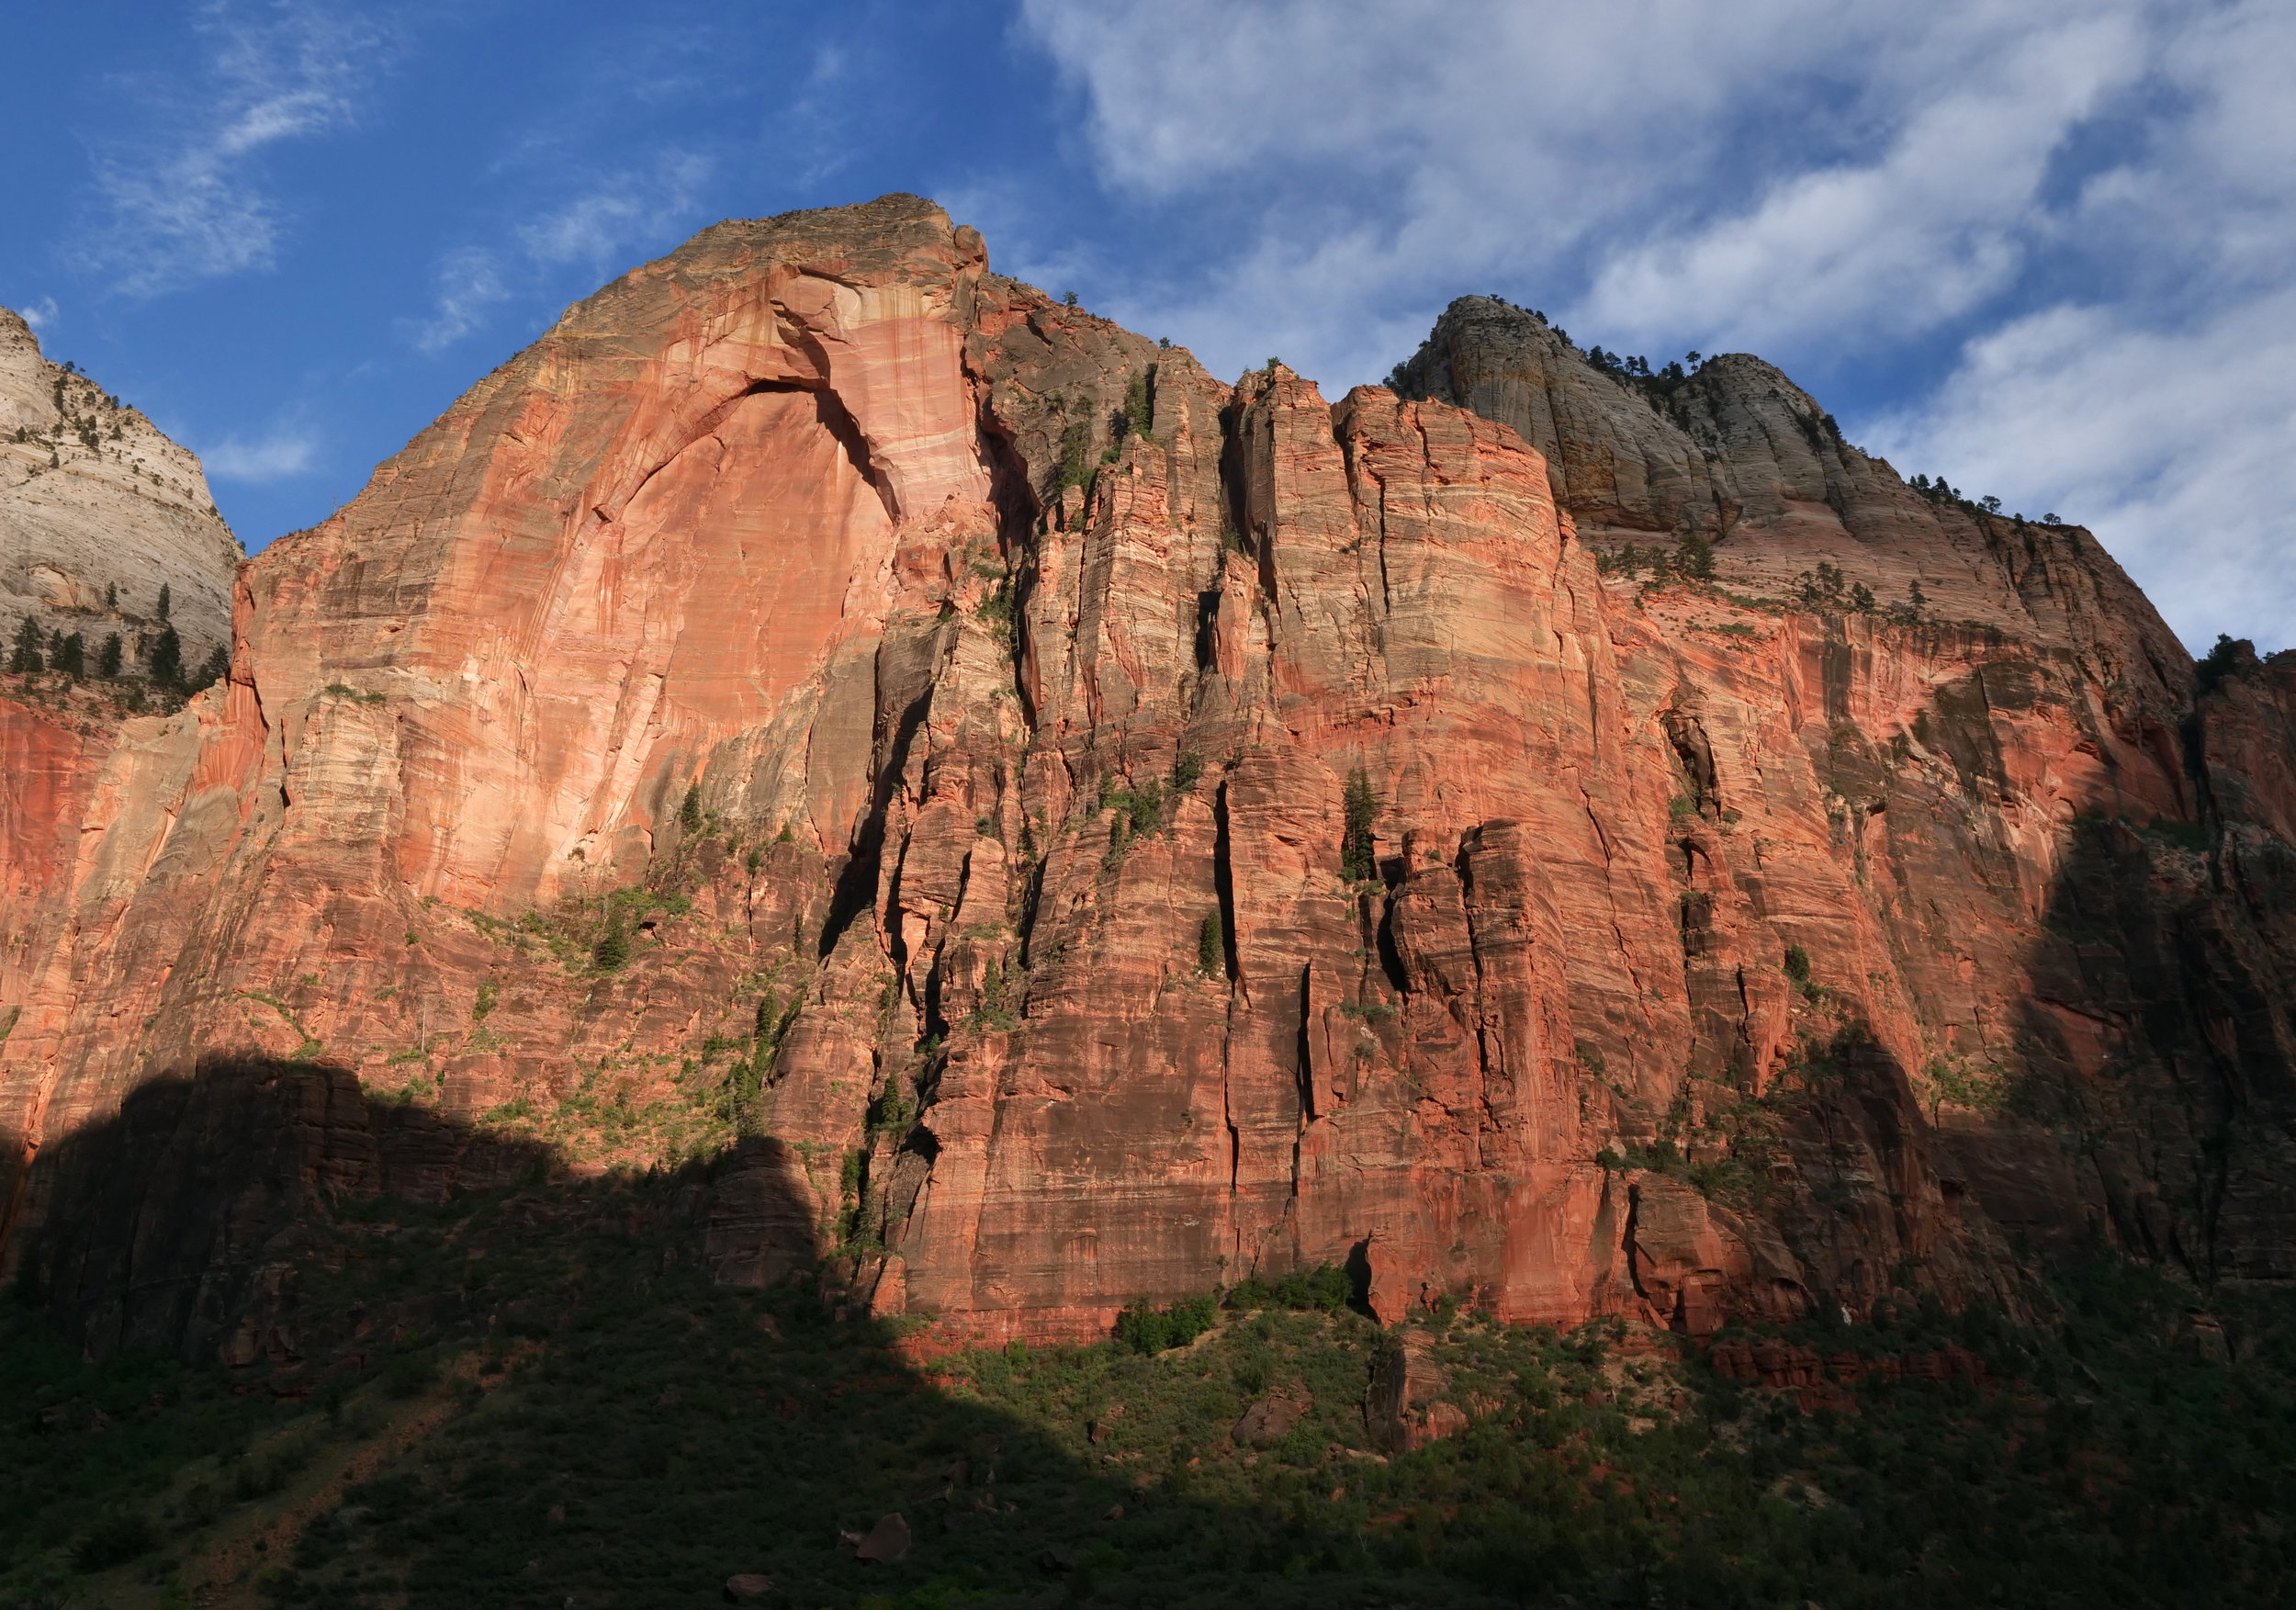 The clouds part on Friday evening to light up the sandstone cliffs at Zion